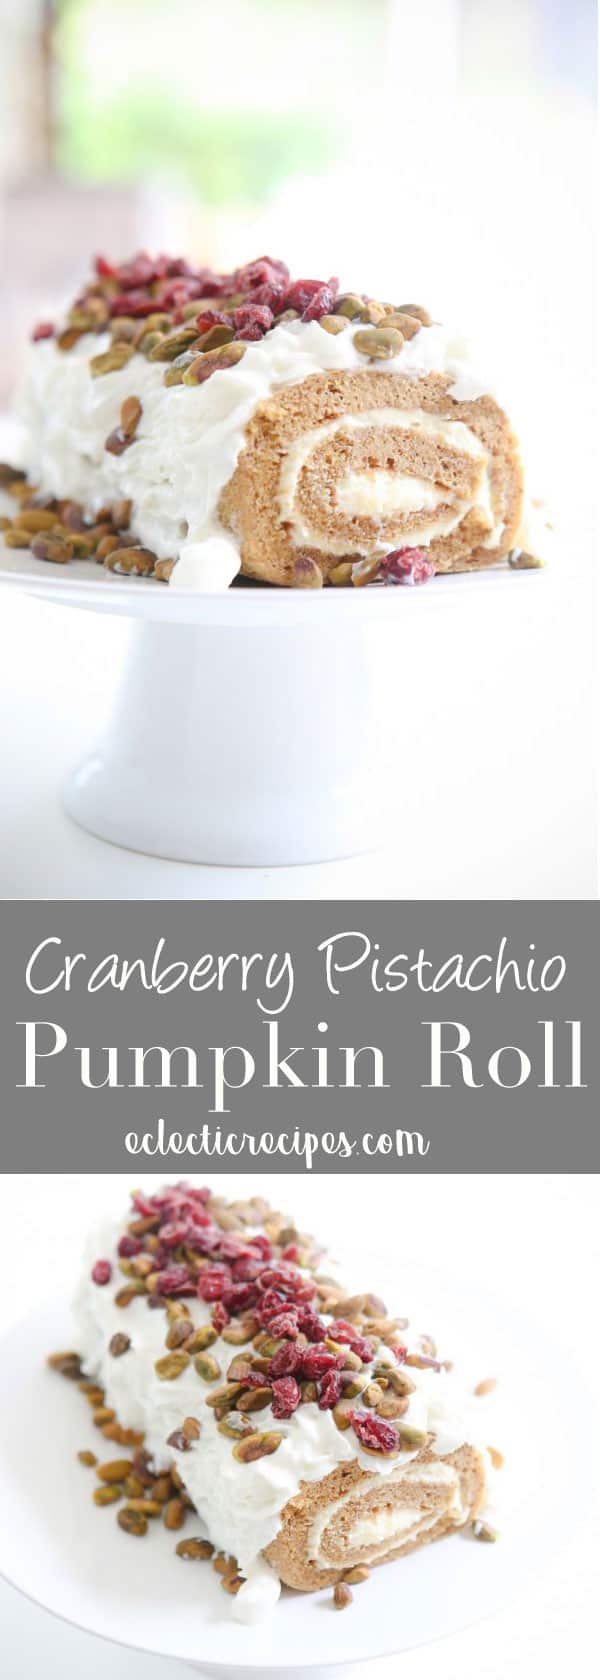 Cranberry Pistachio Pumpkin Roll @EclecticEveryday